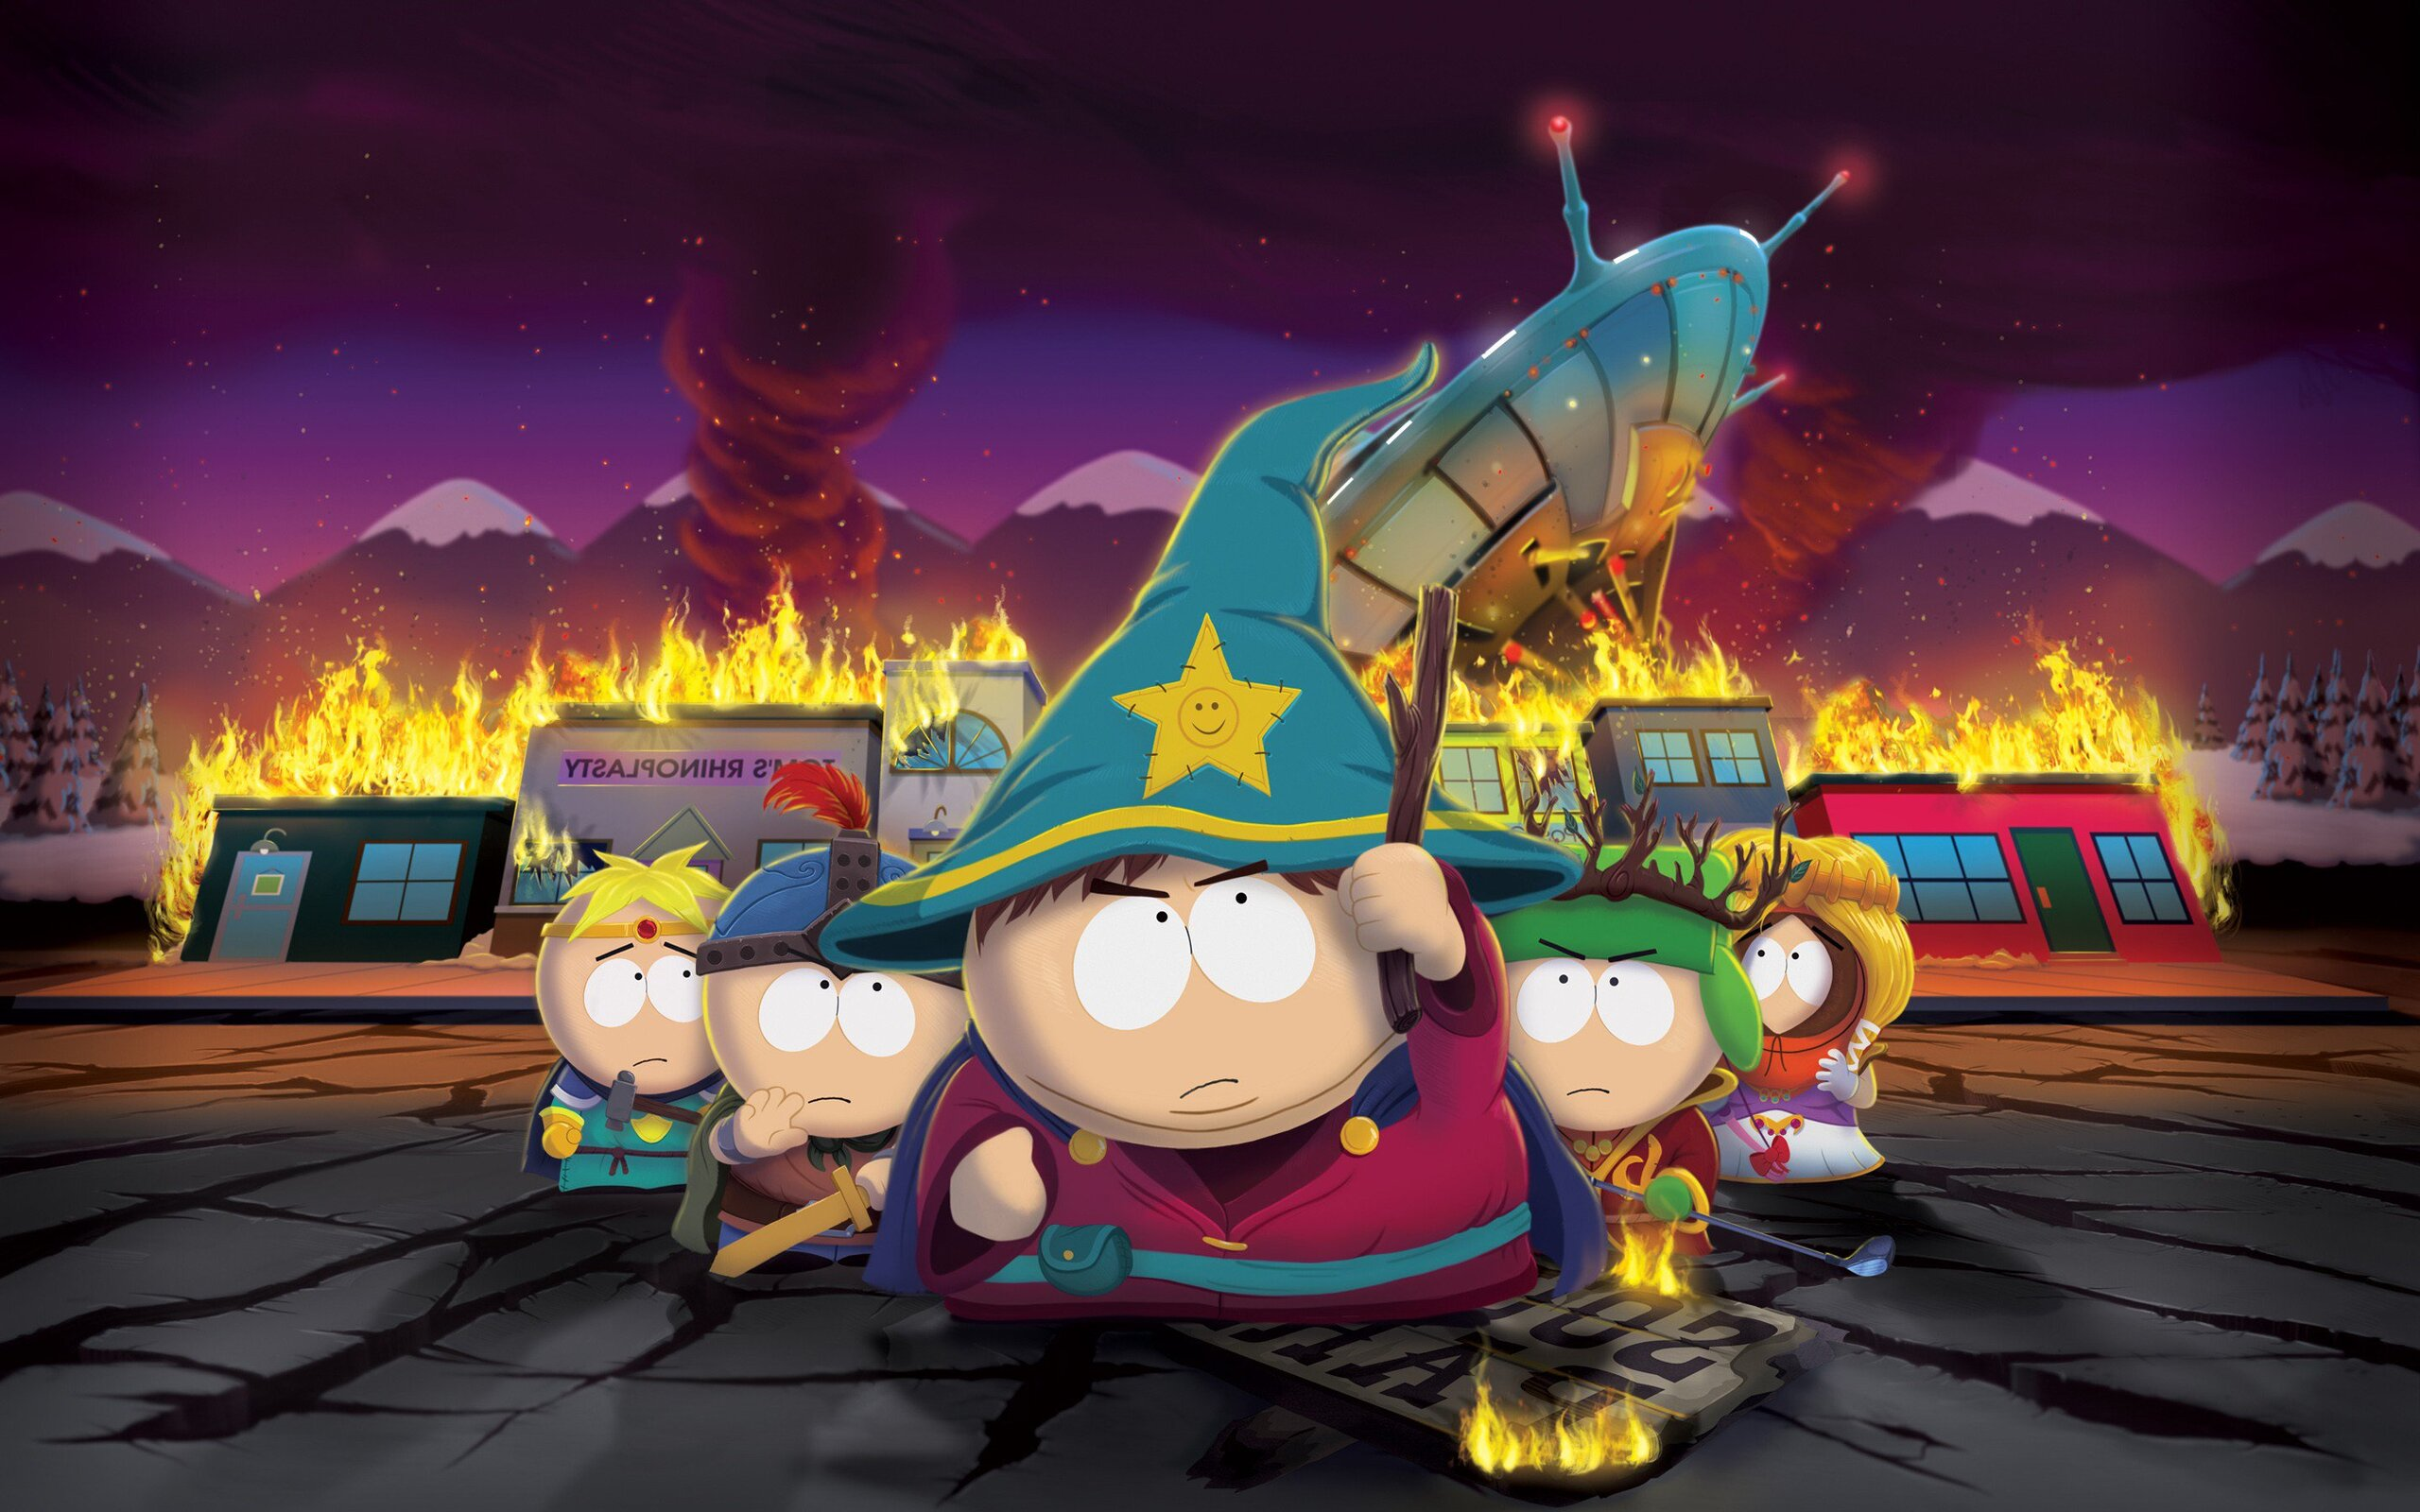 2560x1600 South Park The Stick Of Truth 2560x1600 Resolution Hd 4k